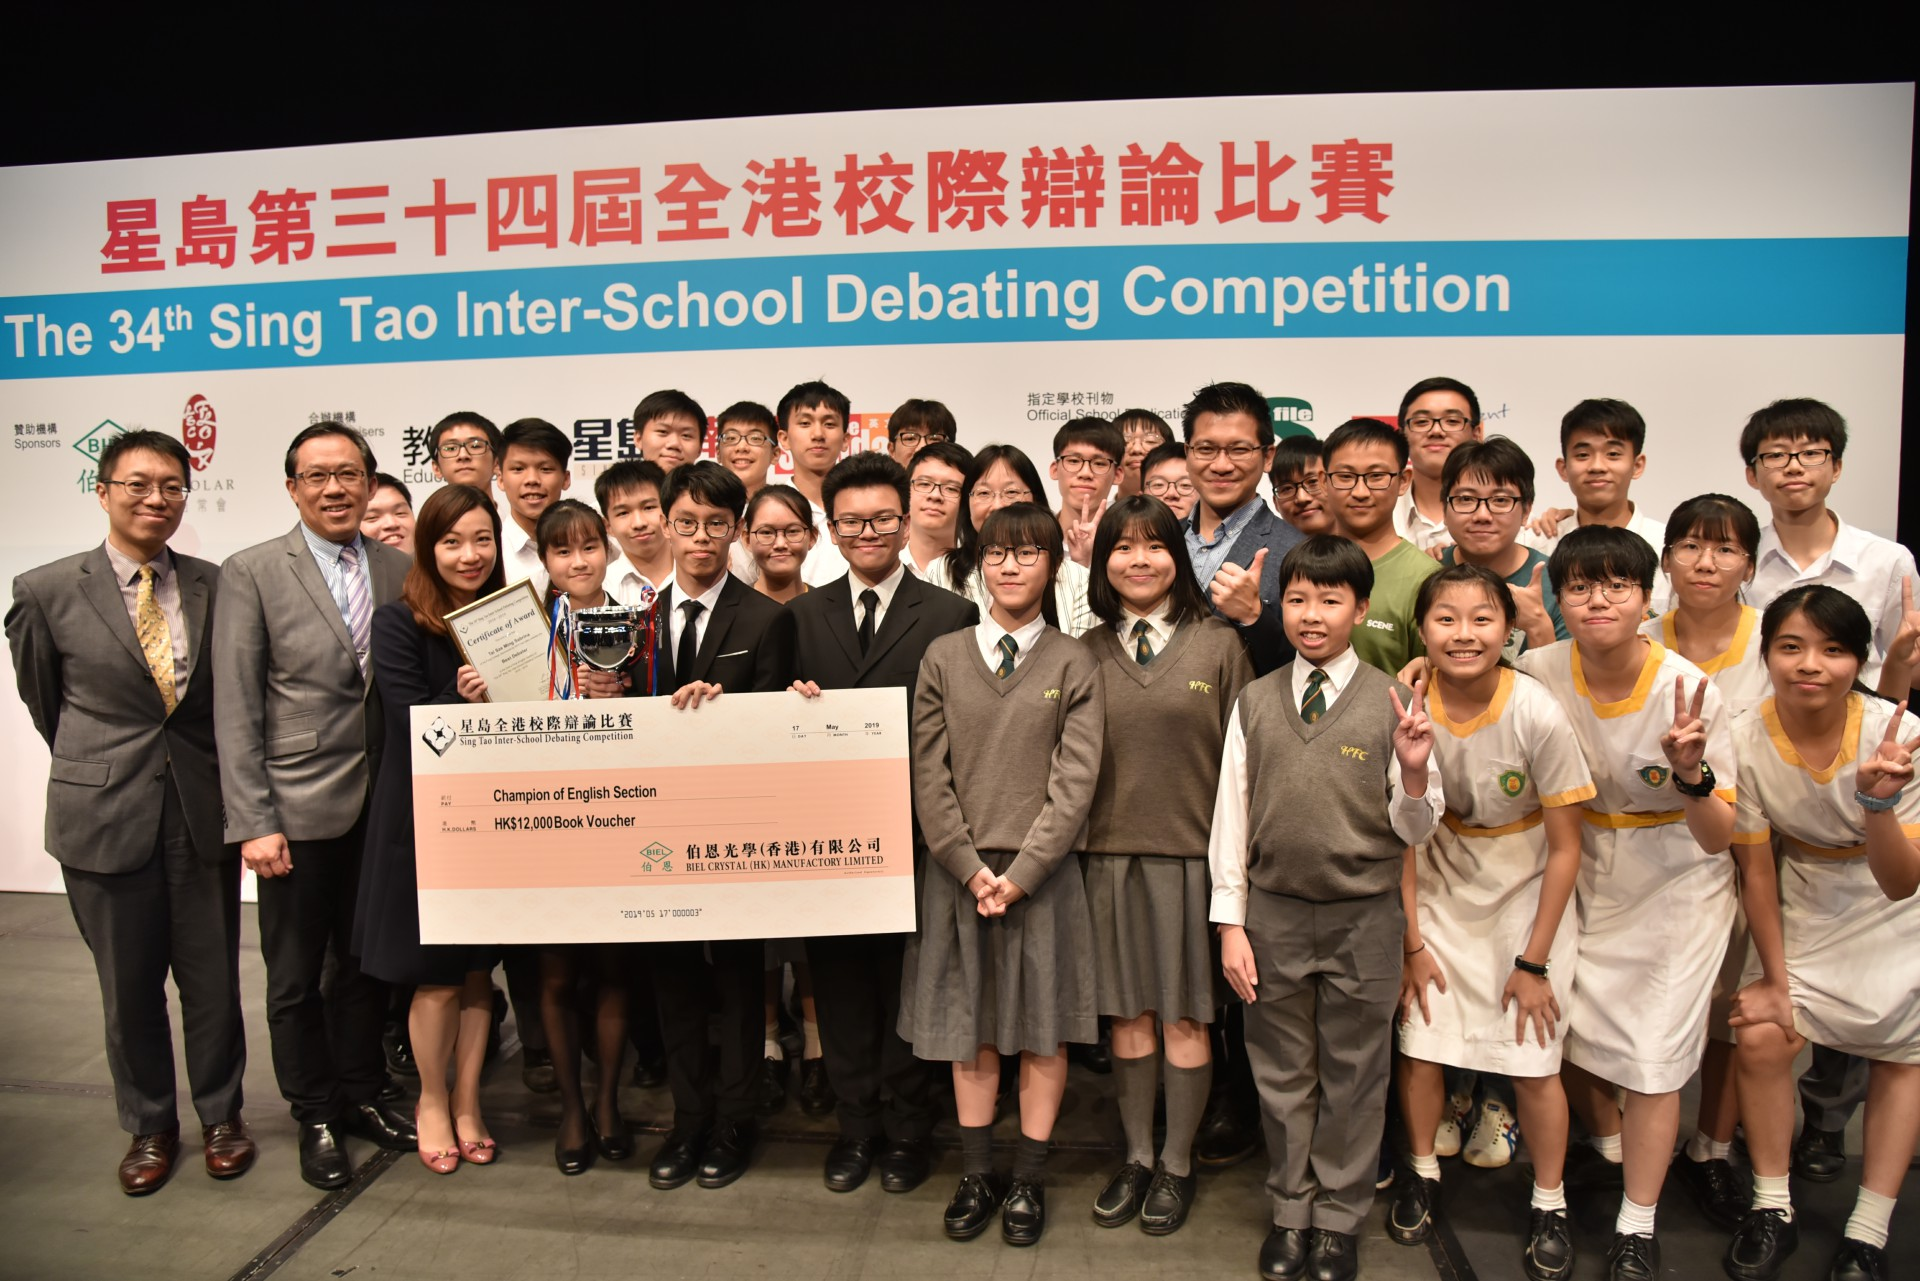 The Champion at the 34th Sing Tao Inter-School Debating Competition